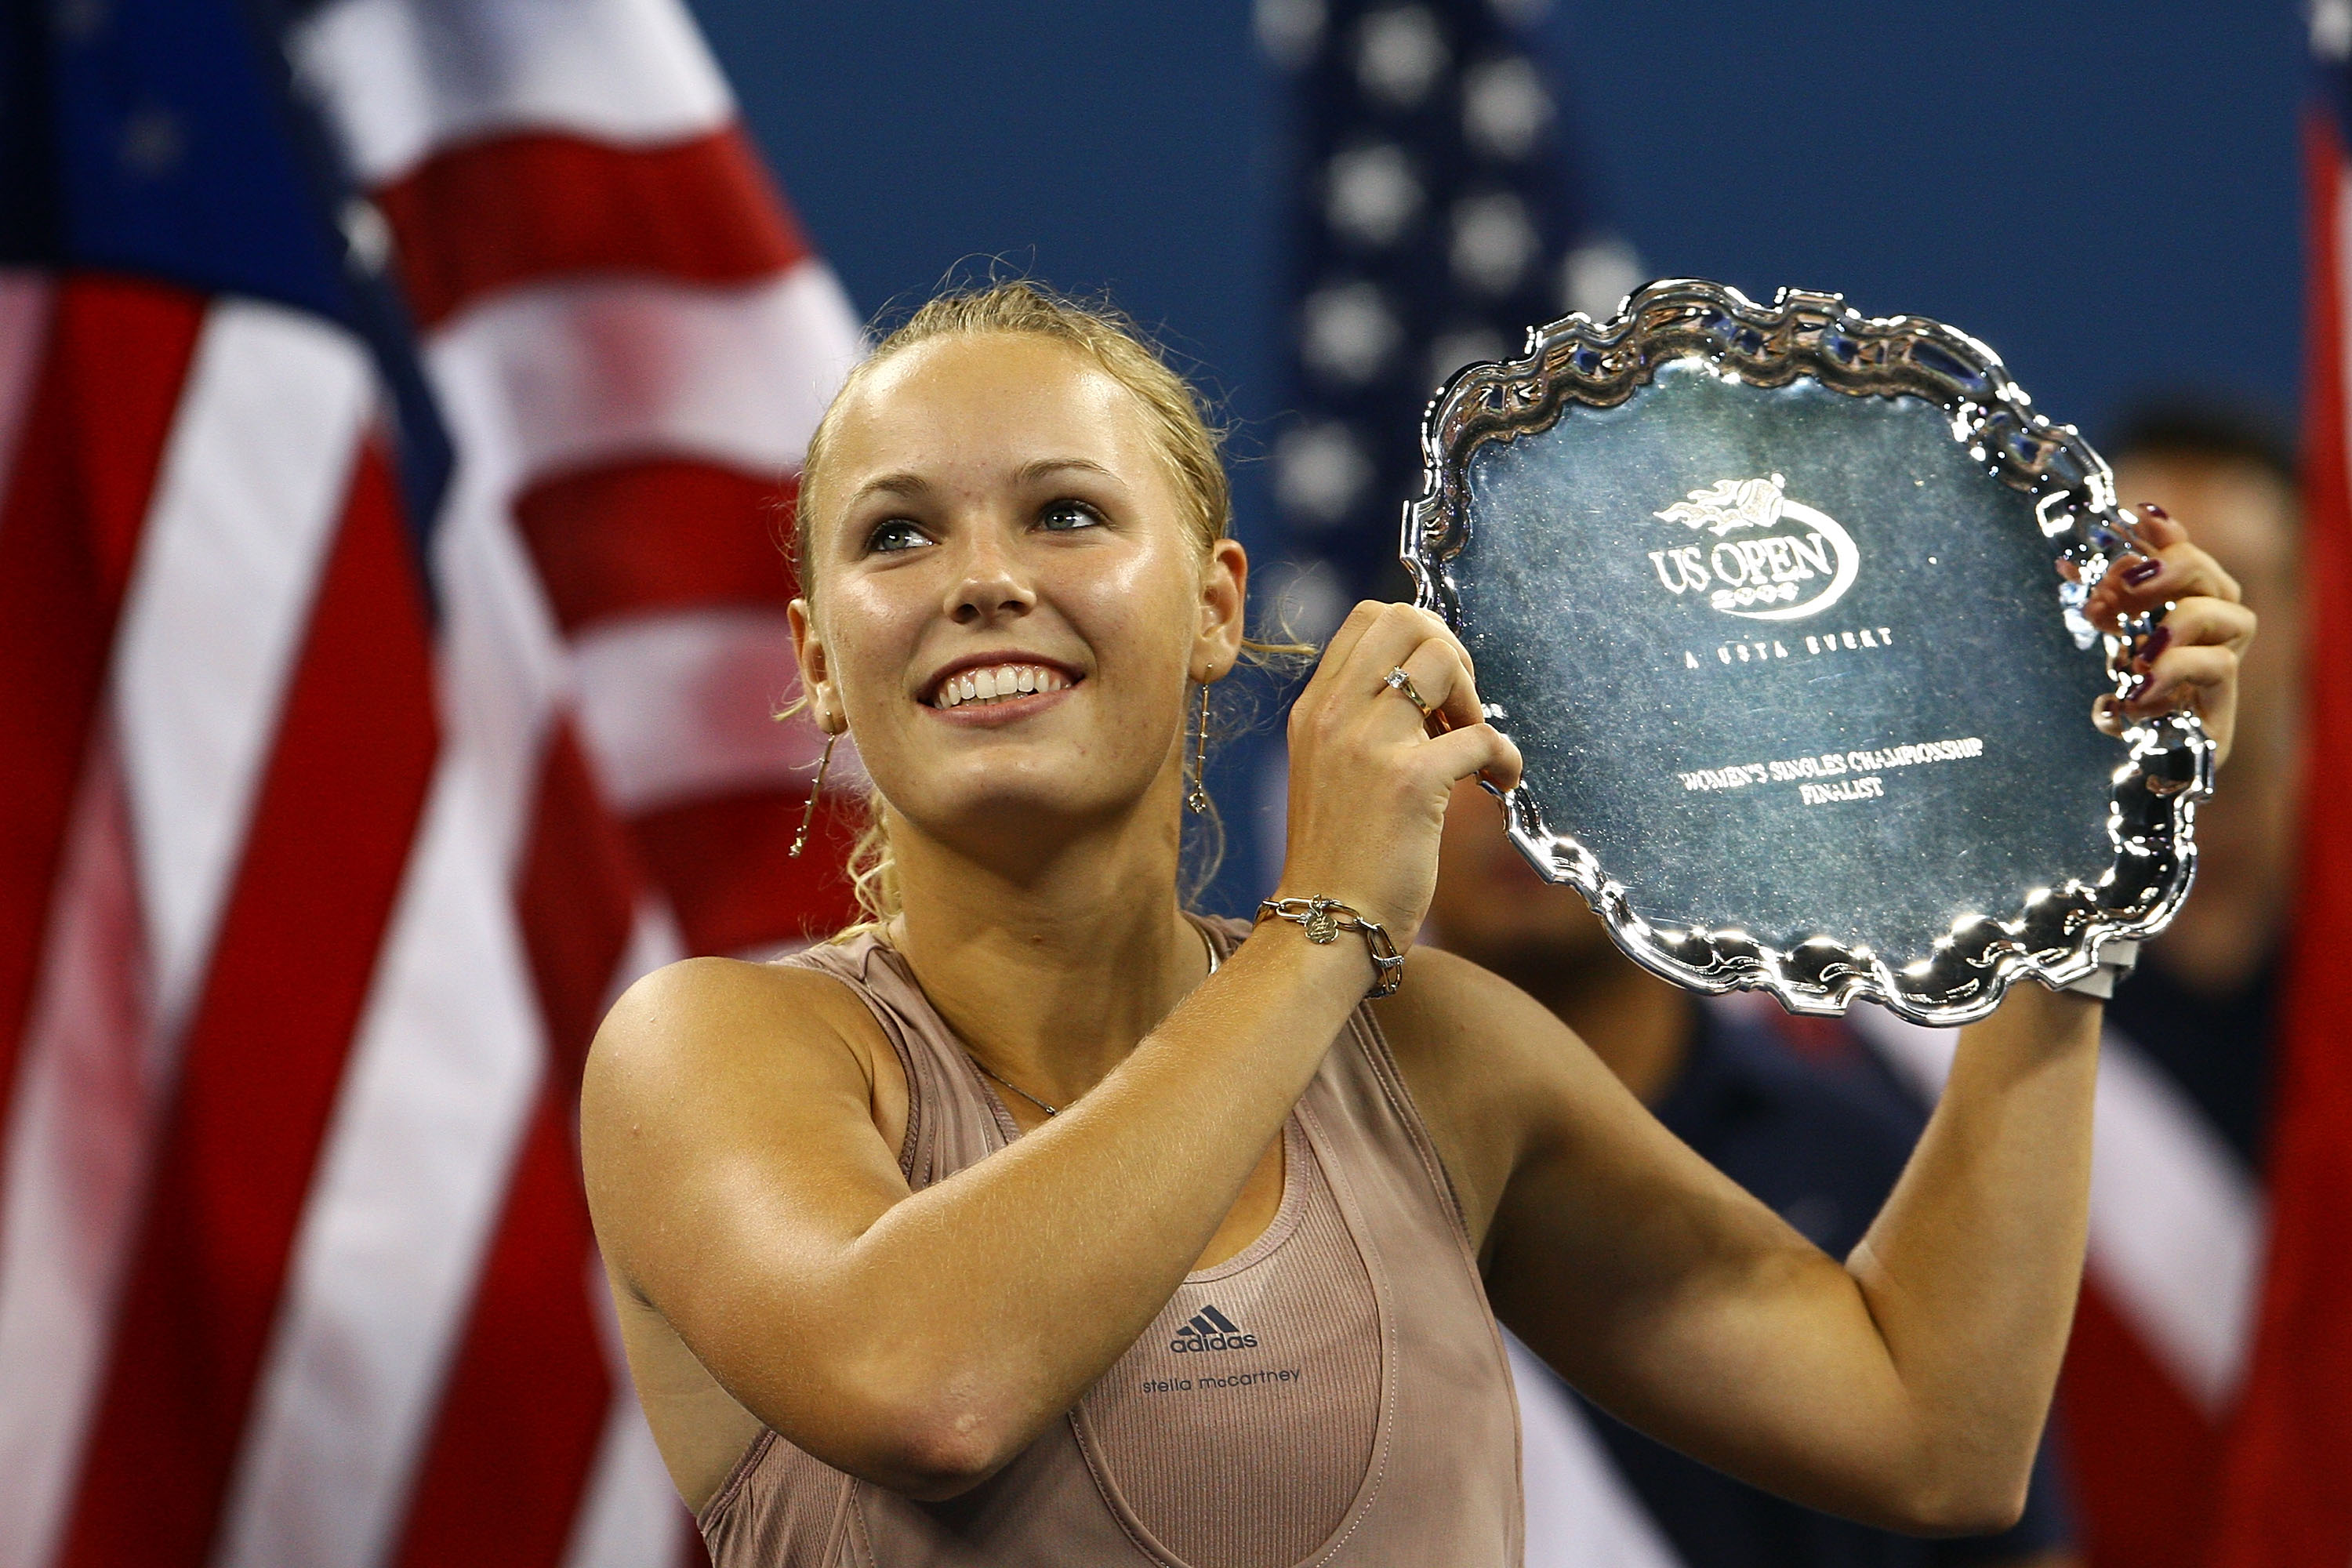 Wozniacki knows how to activate a sponsorship. Just months after signing the Stella deal, she makes her first Slam final at the U.S. Open.